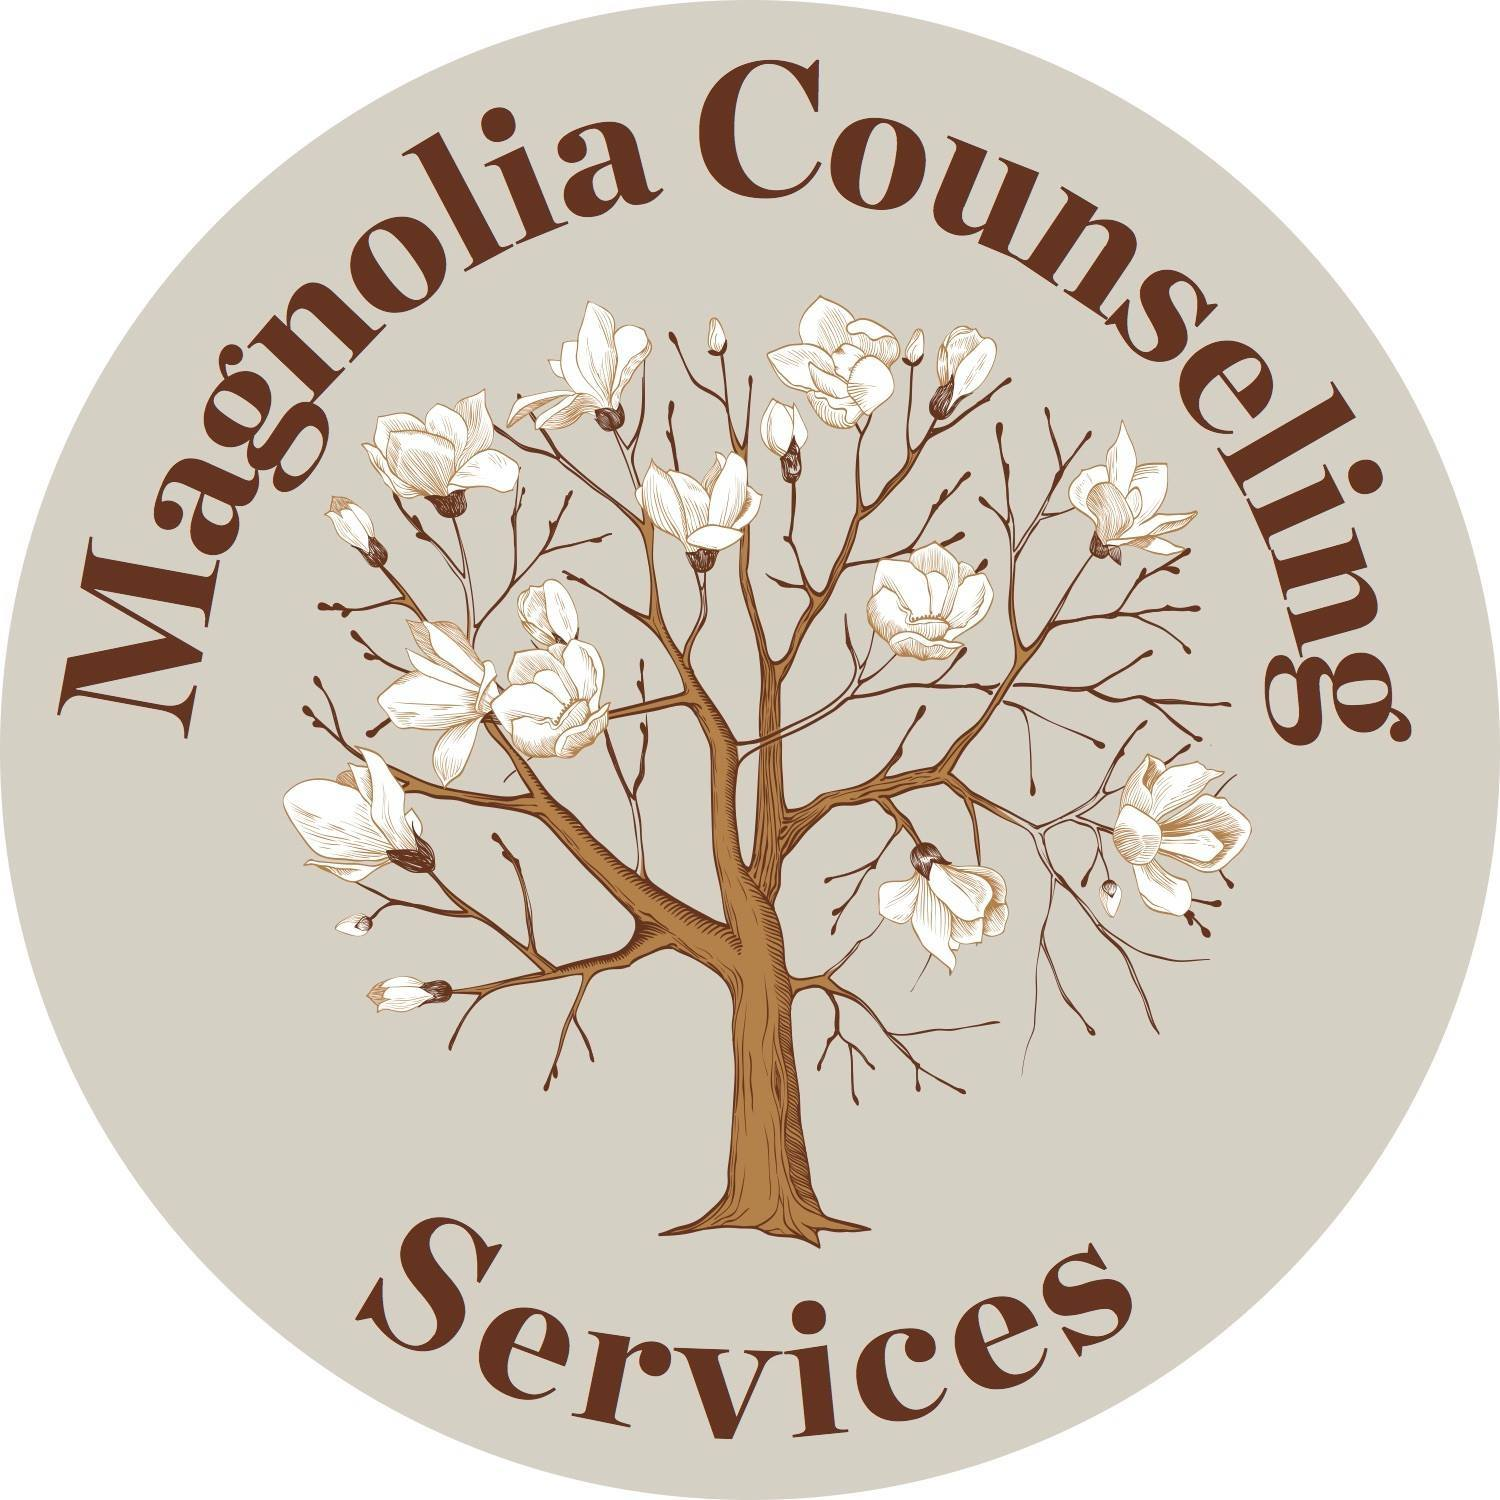 Magnolia Counseling Services